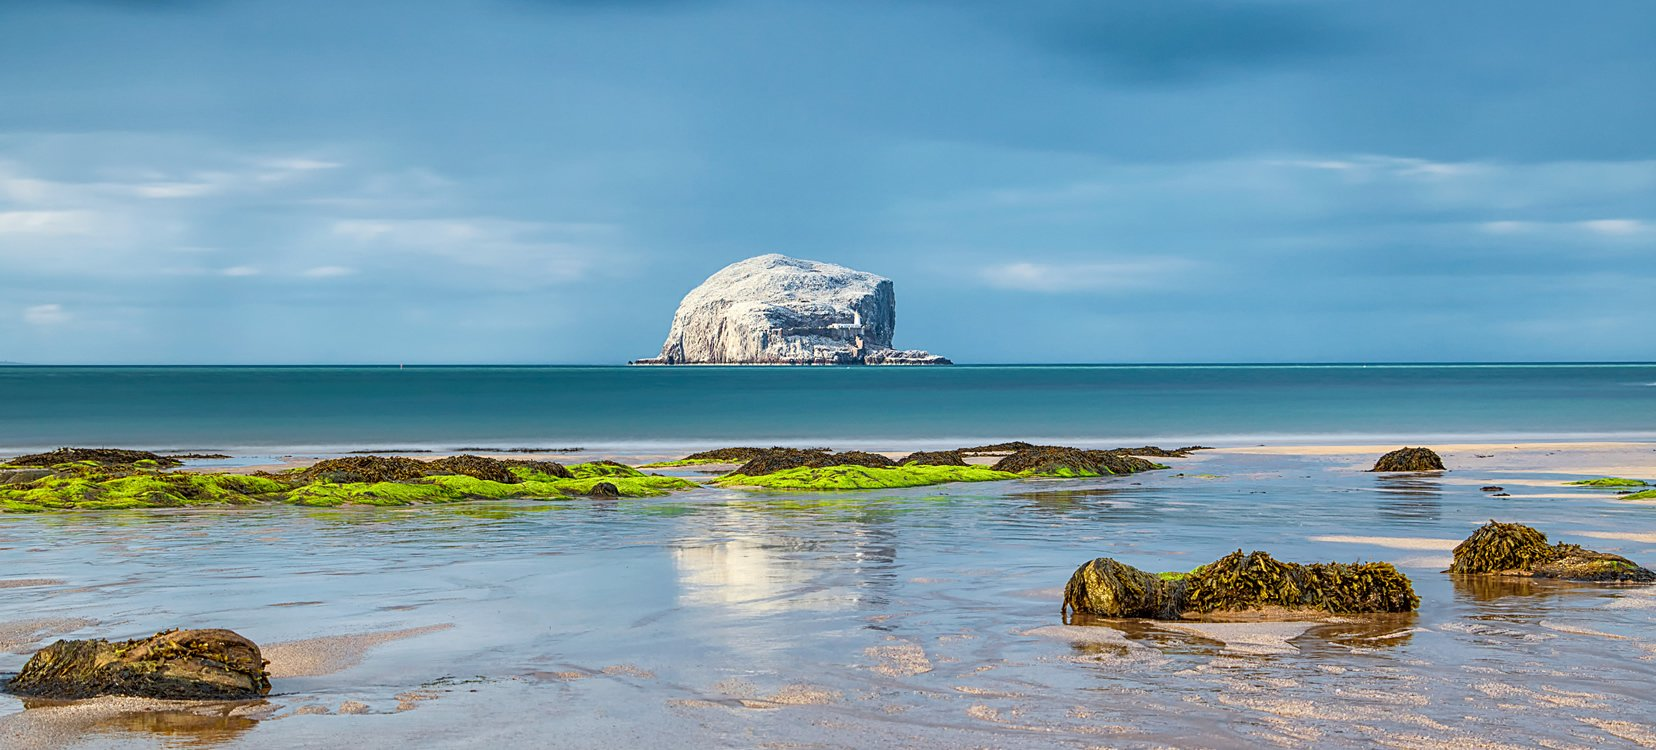 The Bass Rock Volcanic Plug in East Lothian